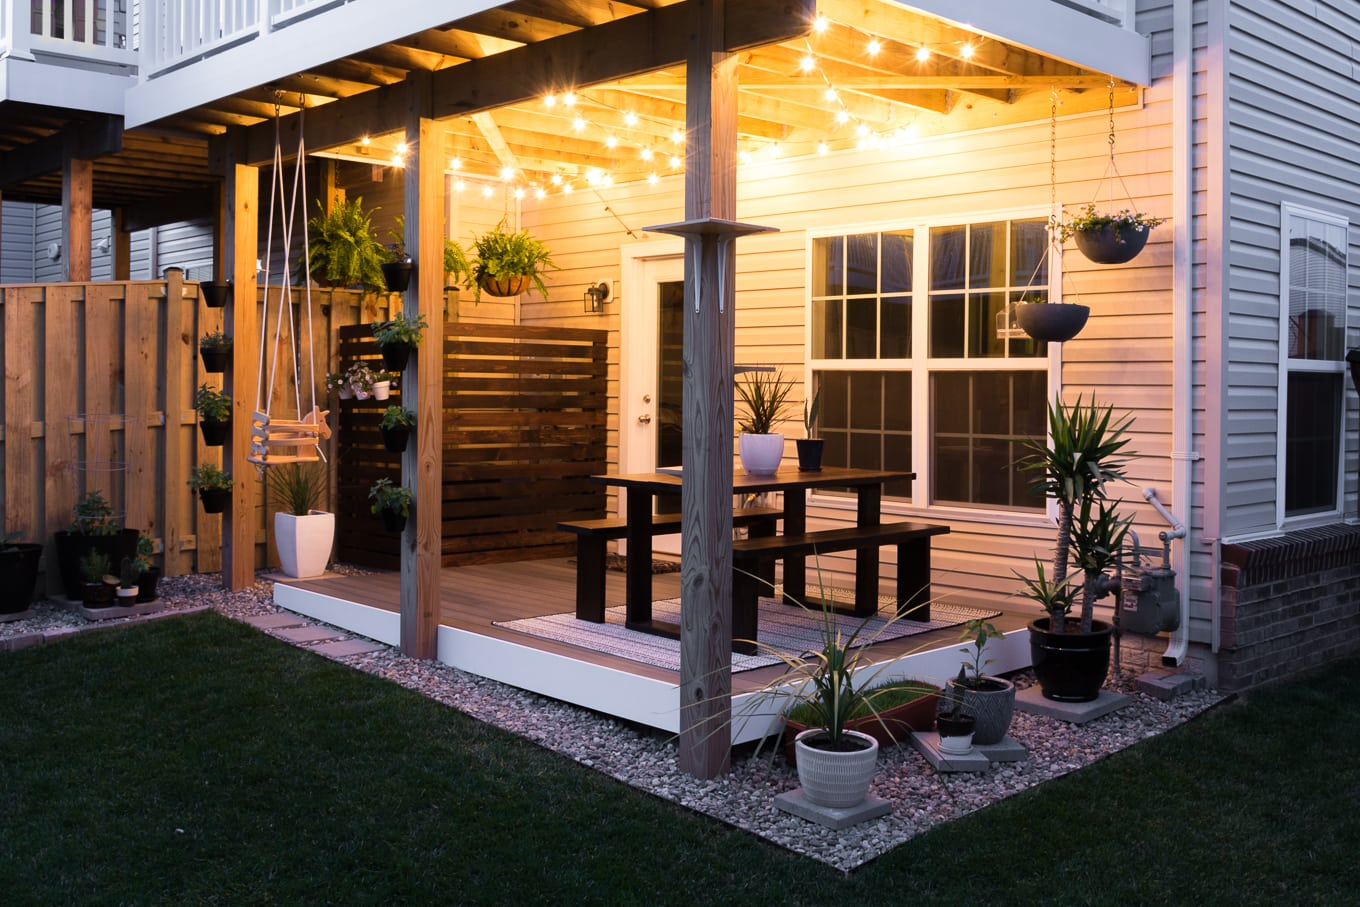 My Tiny Backyard // Modern Design Ideas for a Small Backyard on Modern Landscaping Ideas For Small Backyards  id=81520